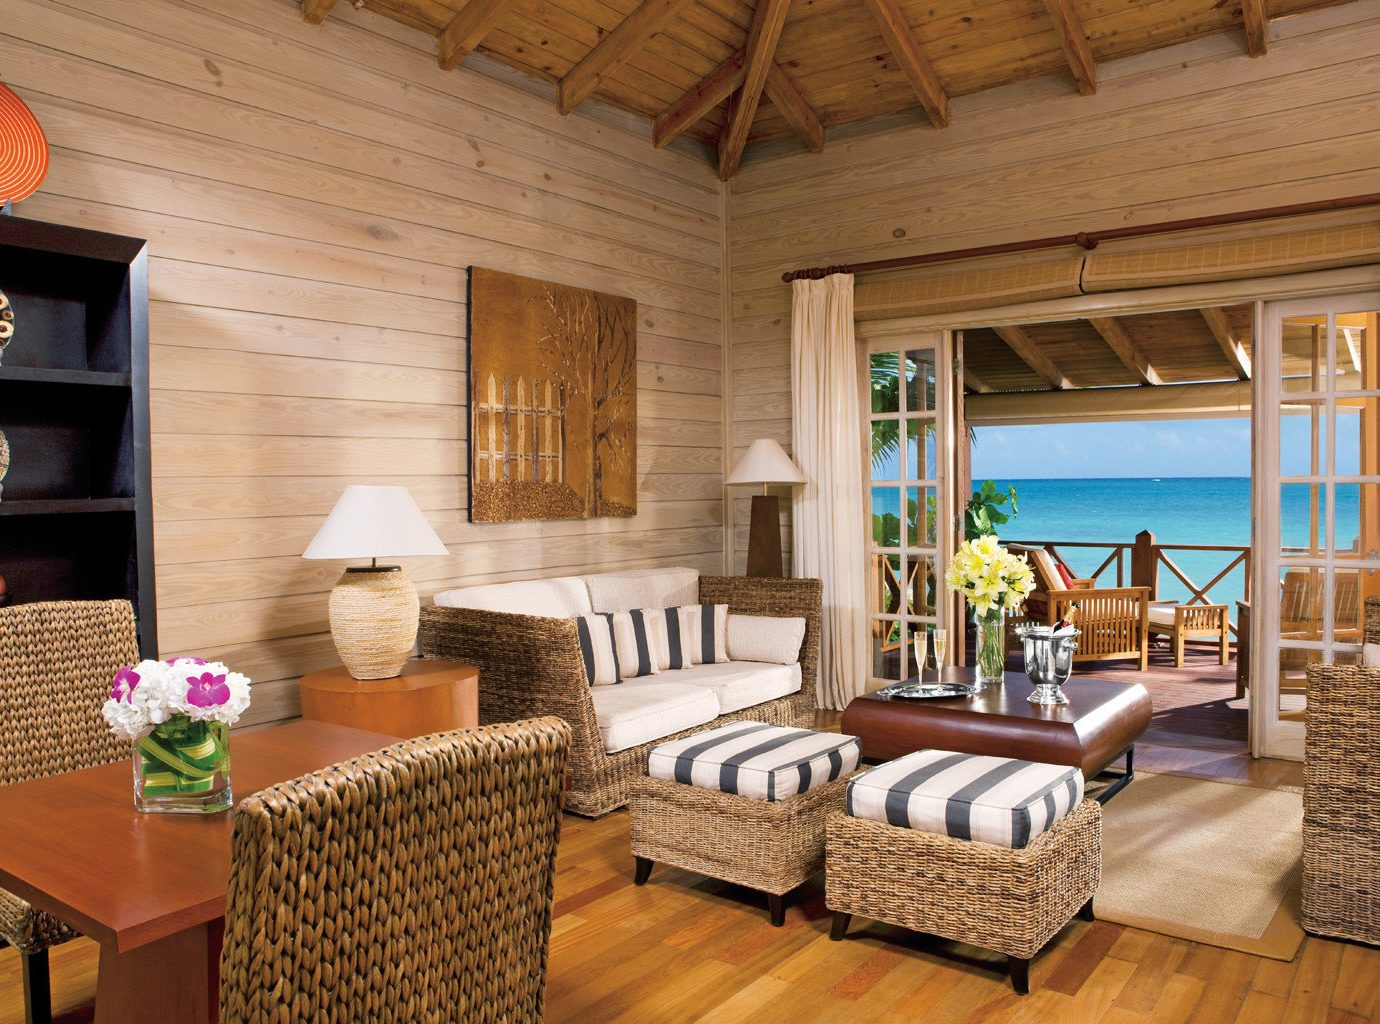 All-Inclusive Resorts Beachfront caribbean Hotels Living Lounge Luxury Modern Romance Scenic views Suite floor indoor room property ceiling chair estate living room cottage home Villa farmhouse hardwood real estate interior design log cabin furniture area wood